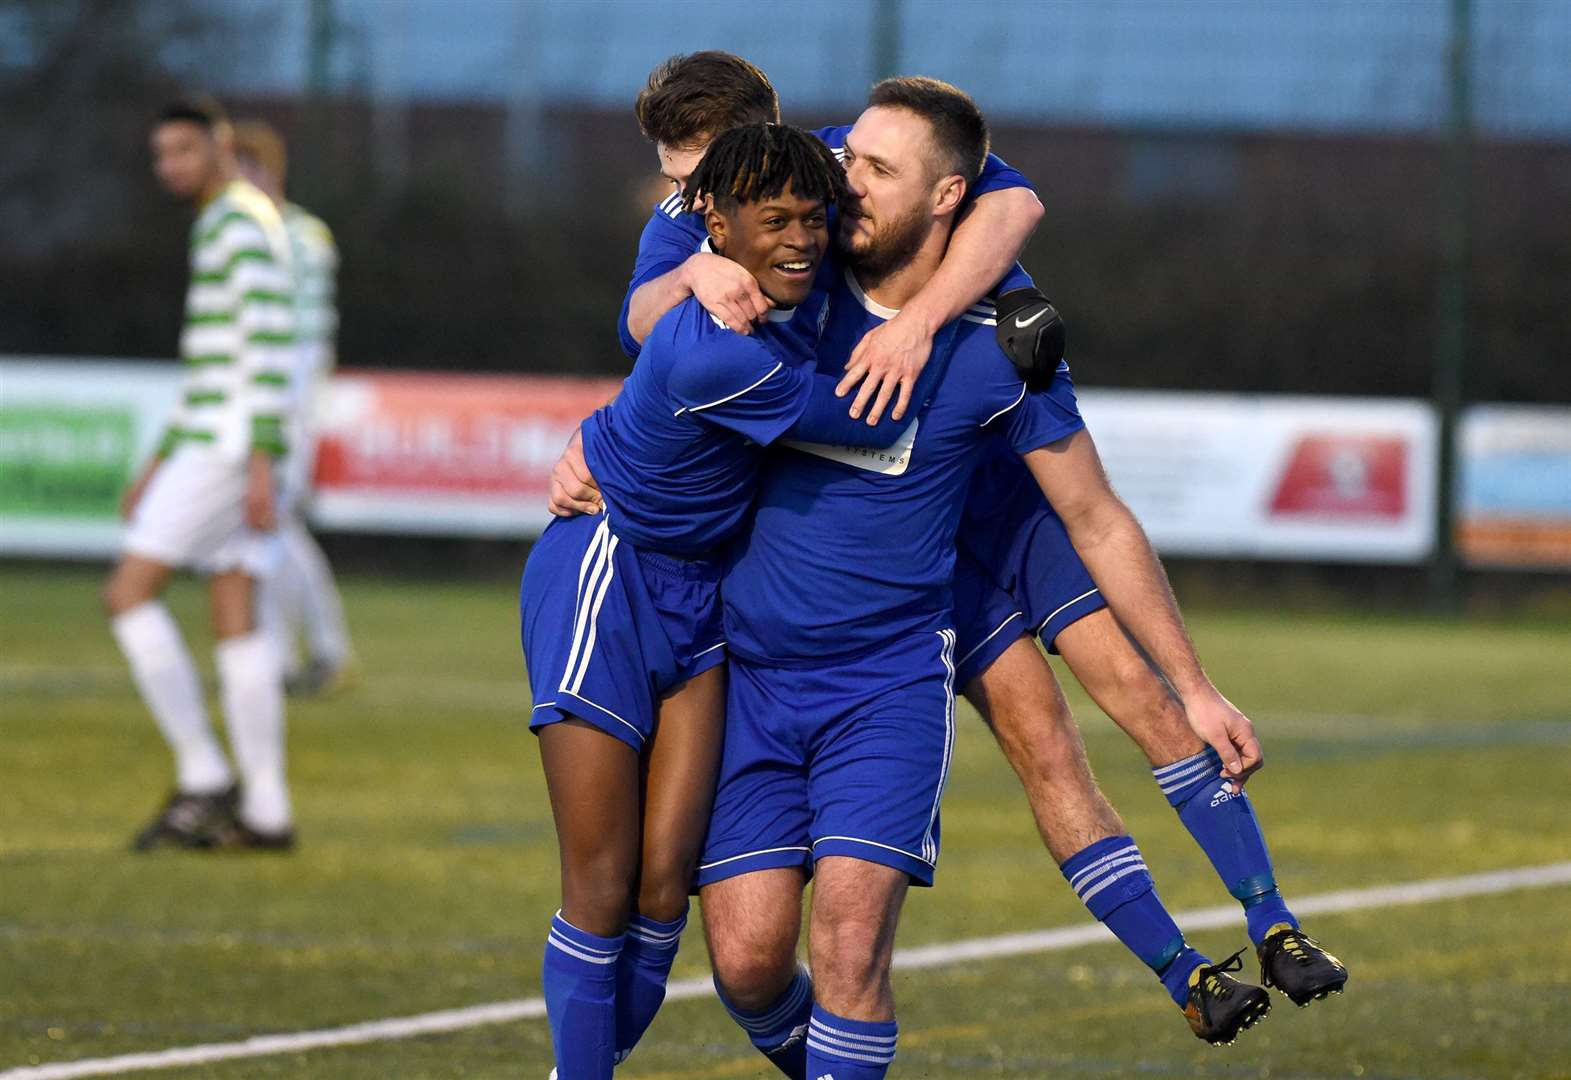 'We're getting stronger' says Habbin after Borough win